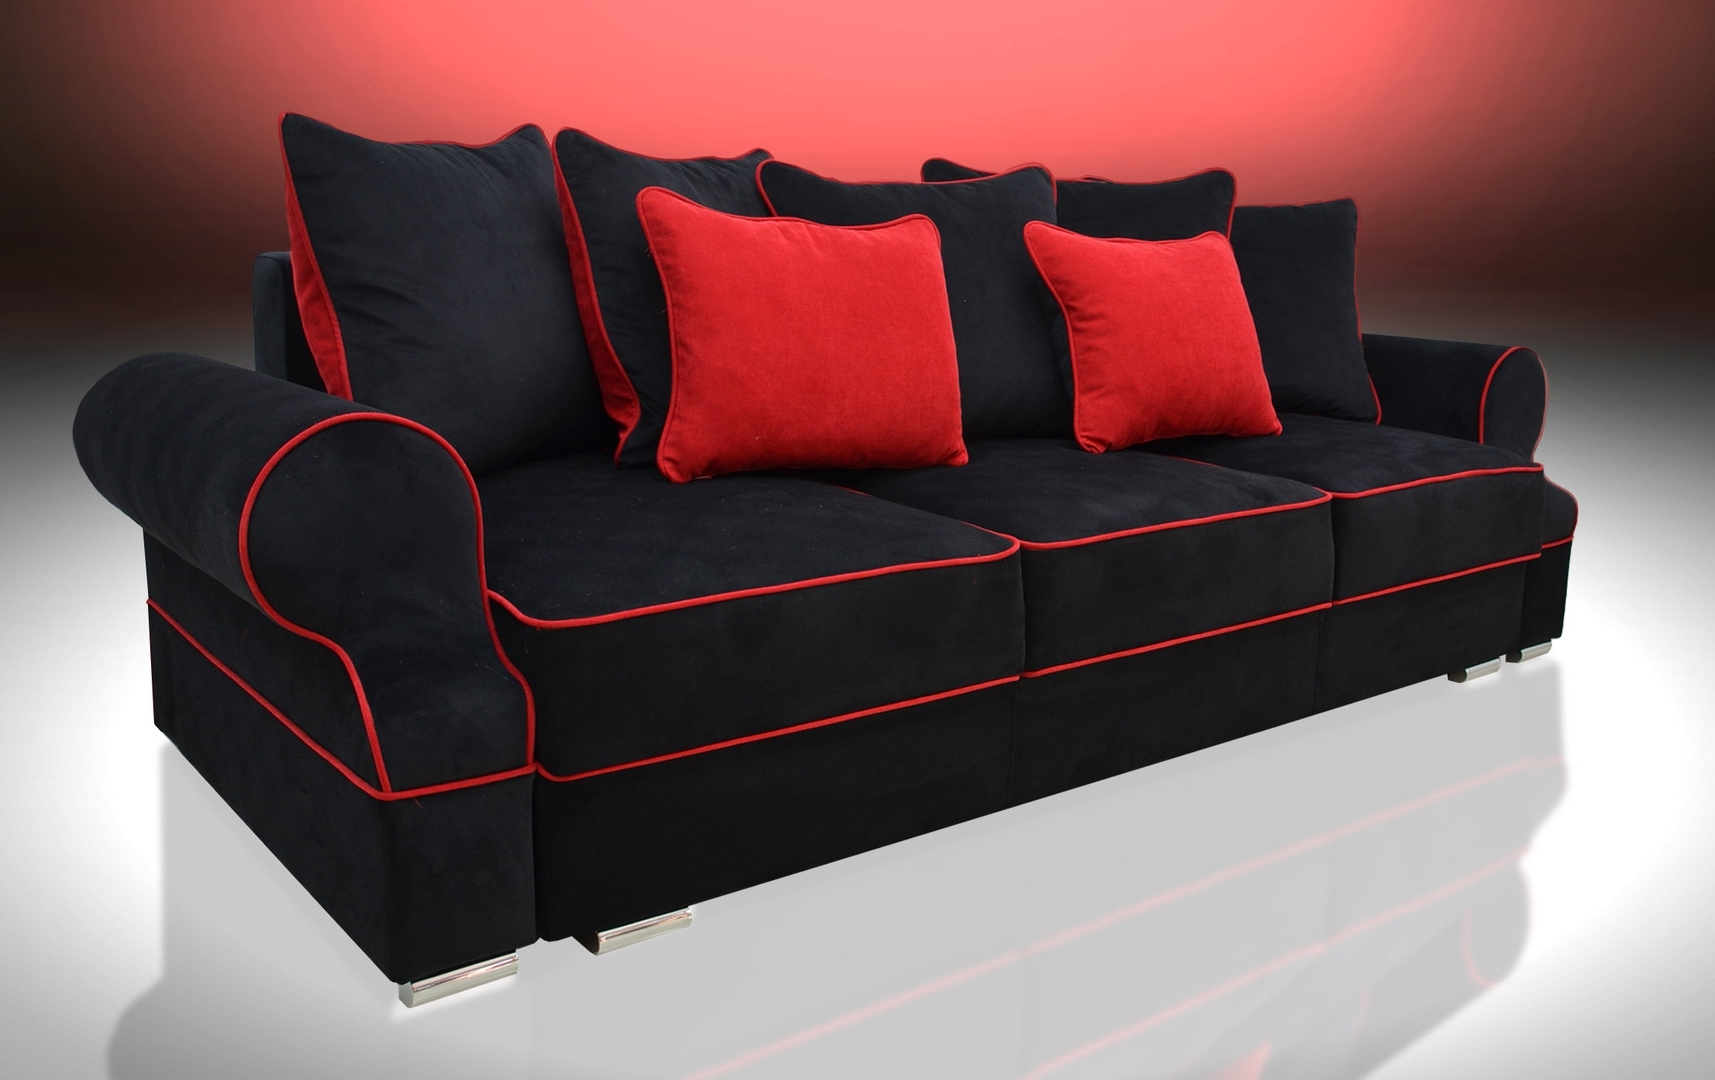 Bed 3 Seater Royal, Black/red Velvet Fabric Within Best And Newest Red And Black Sofas (View 1 of 20)